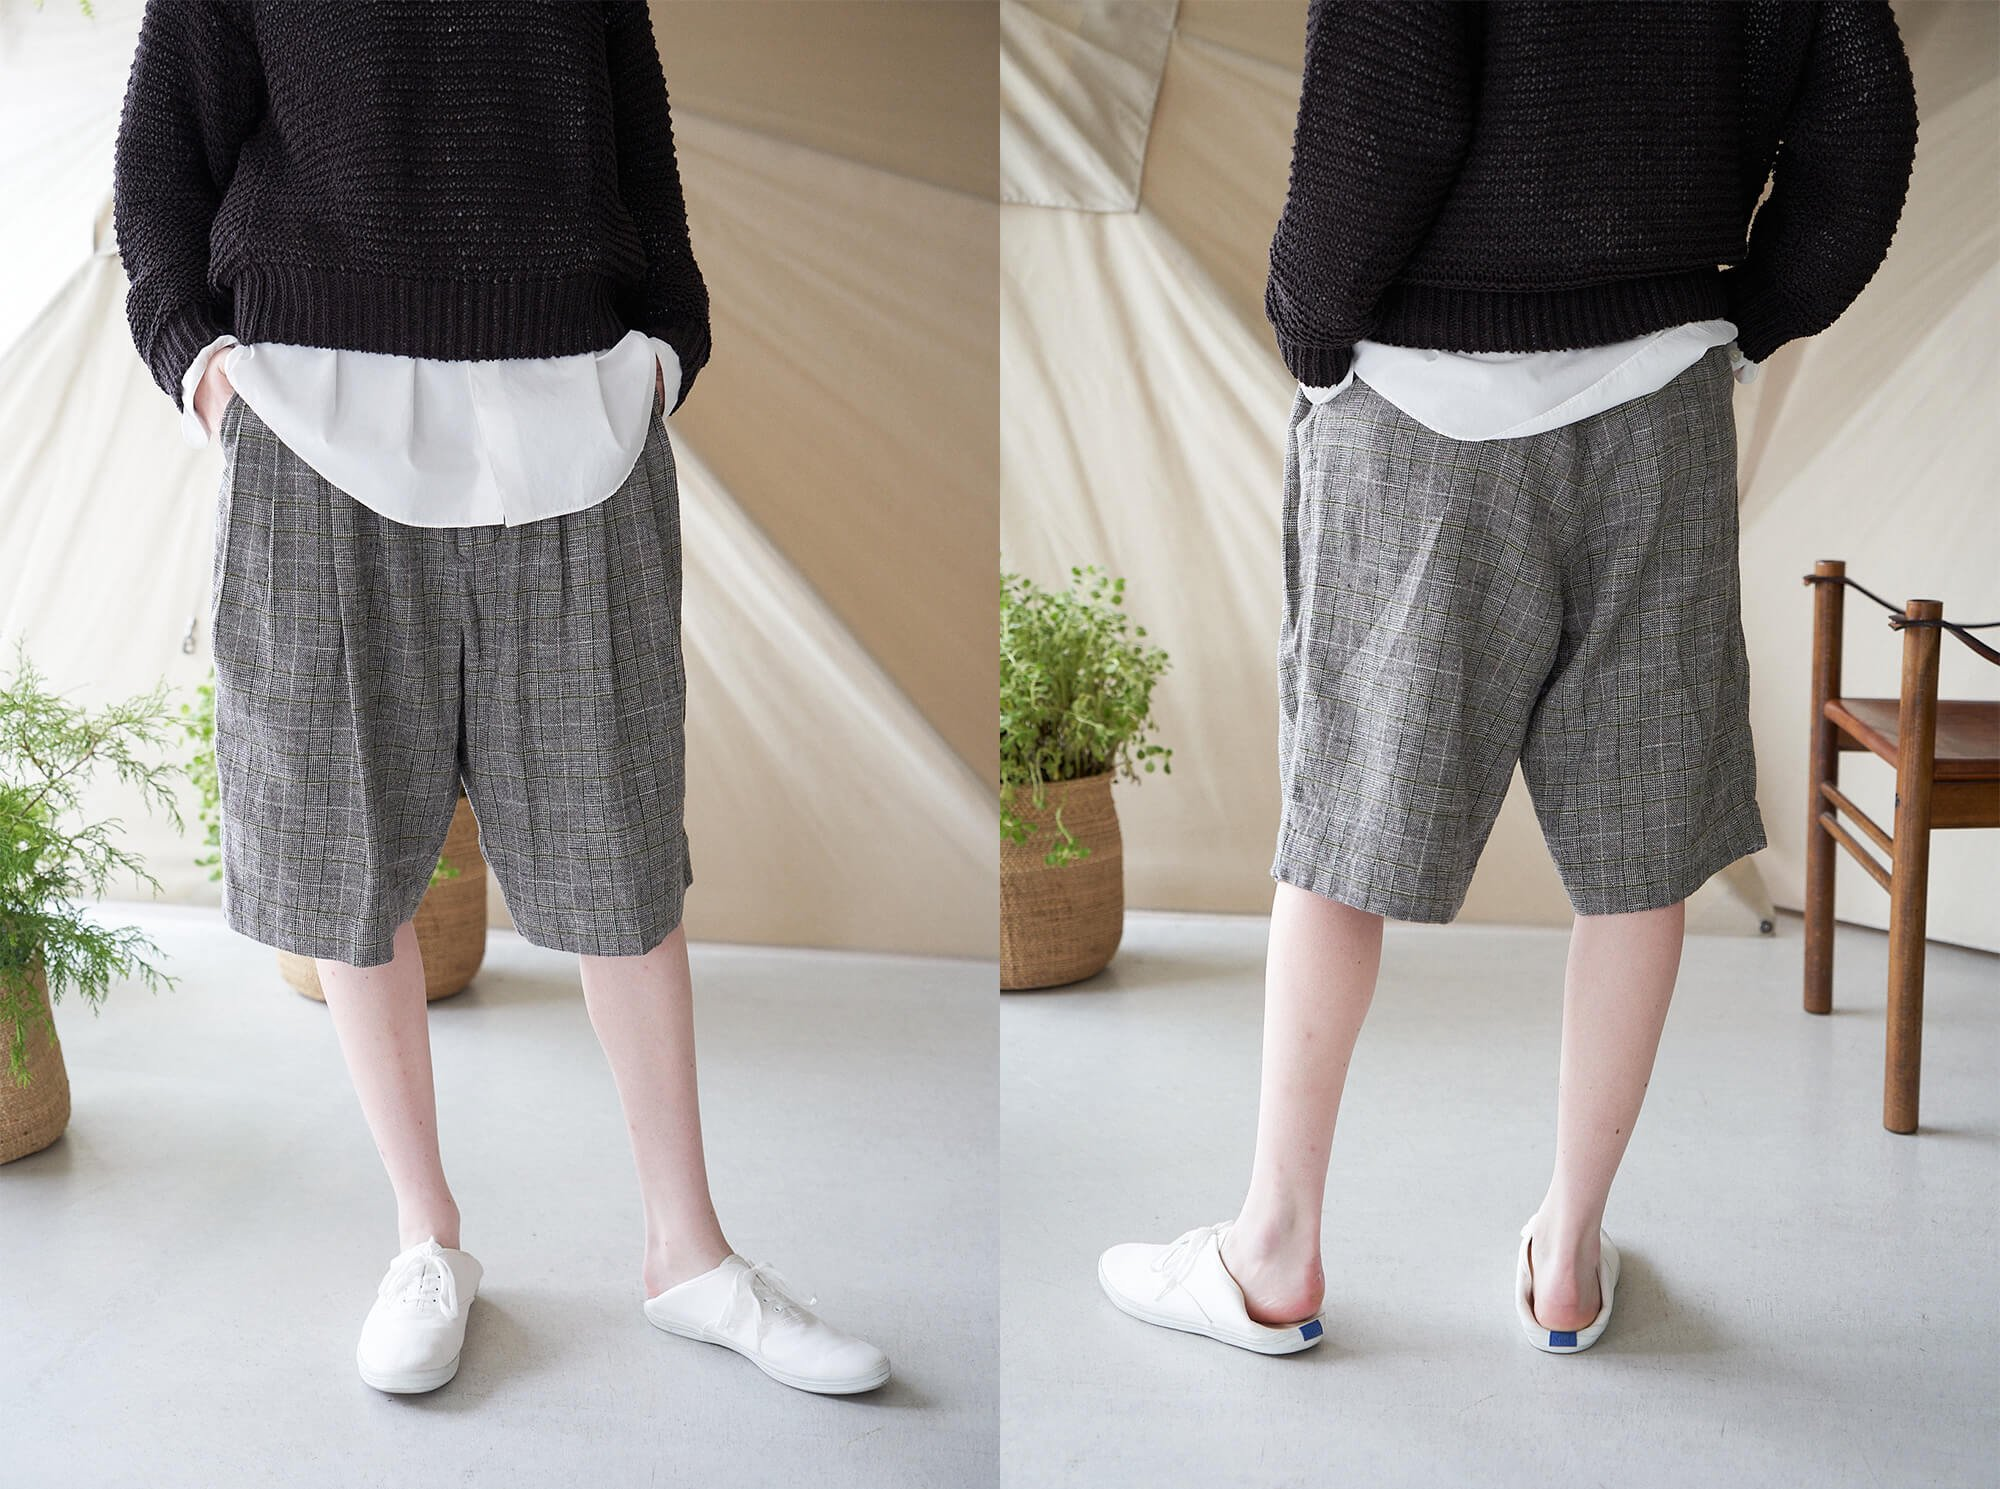 <img class='new_mark_img1' src='https://img.shop-pro.jp/img/new/icons14.gif' style='border:none;display:inline;margin:0px;padding:0px;width:auto;' />glen checked-tweed 4 tuck shorts